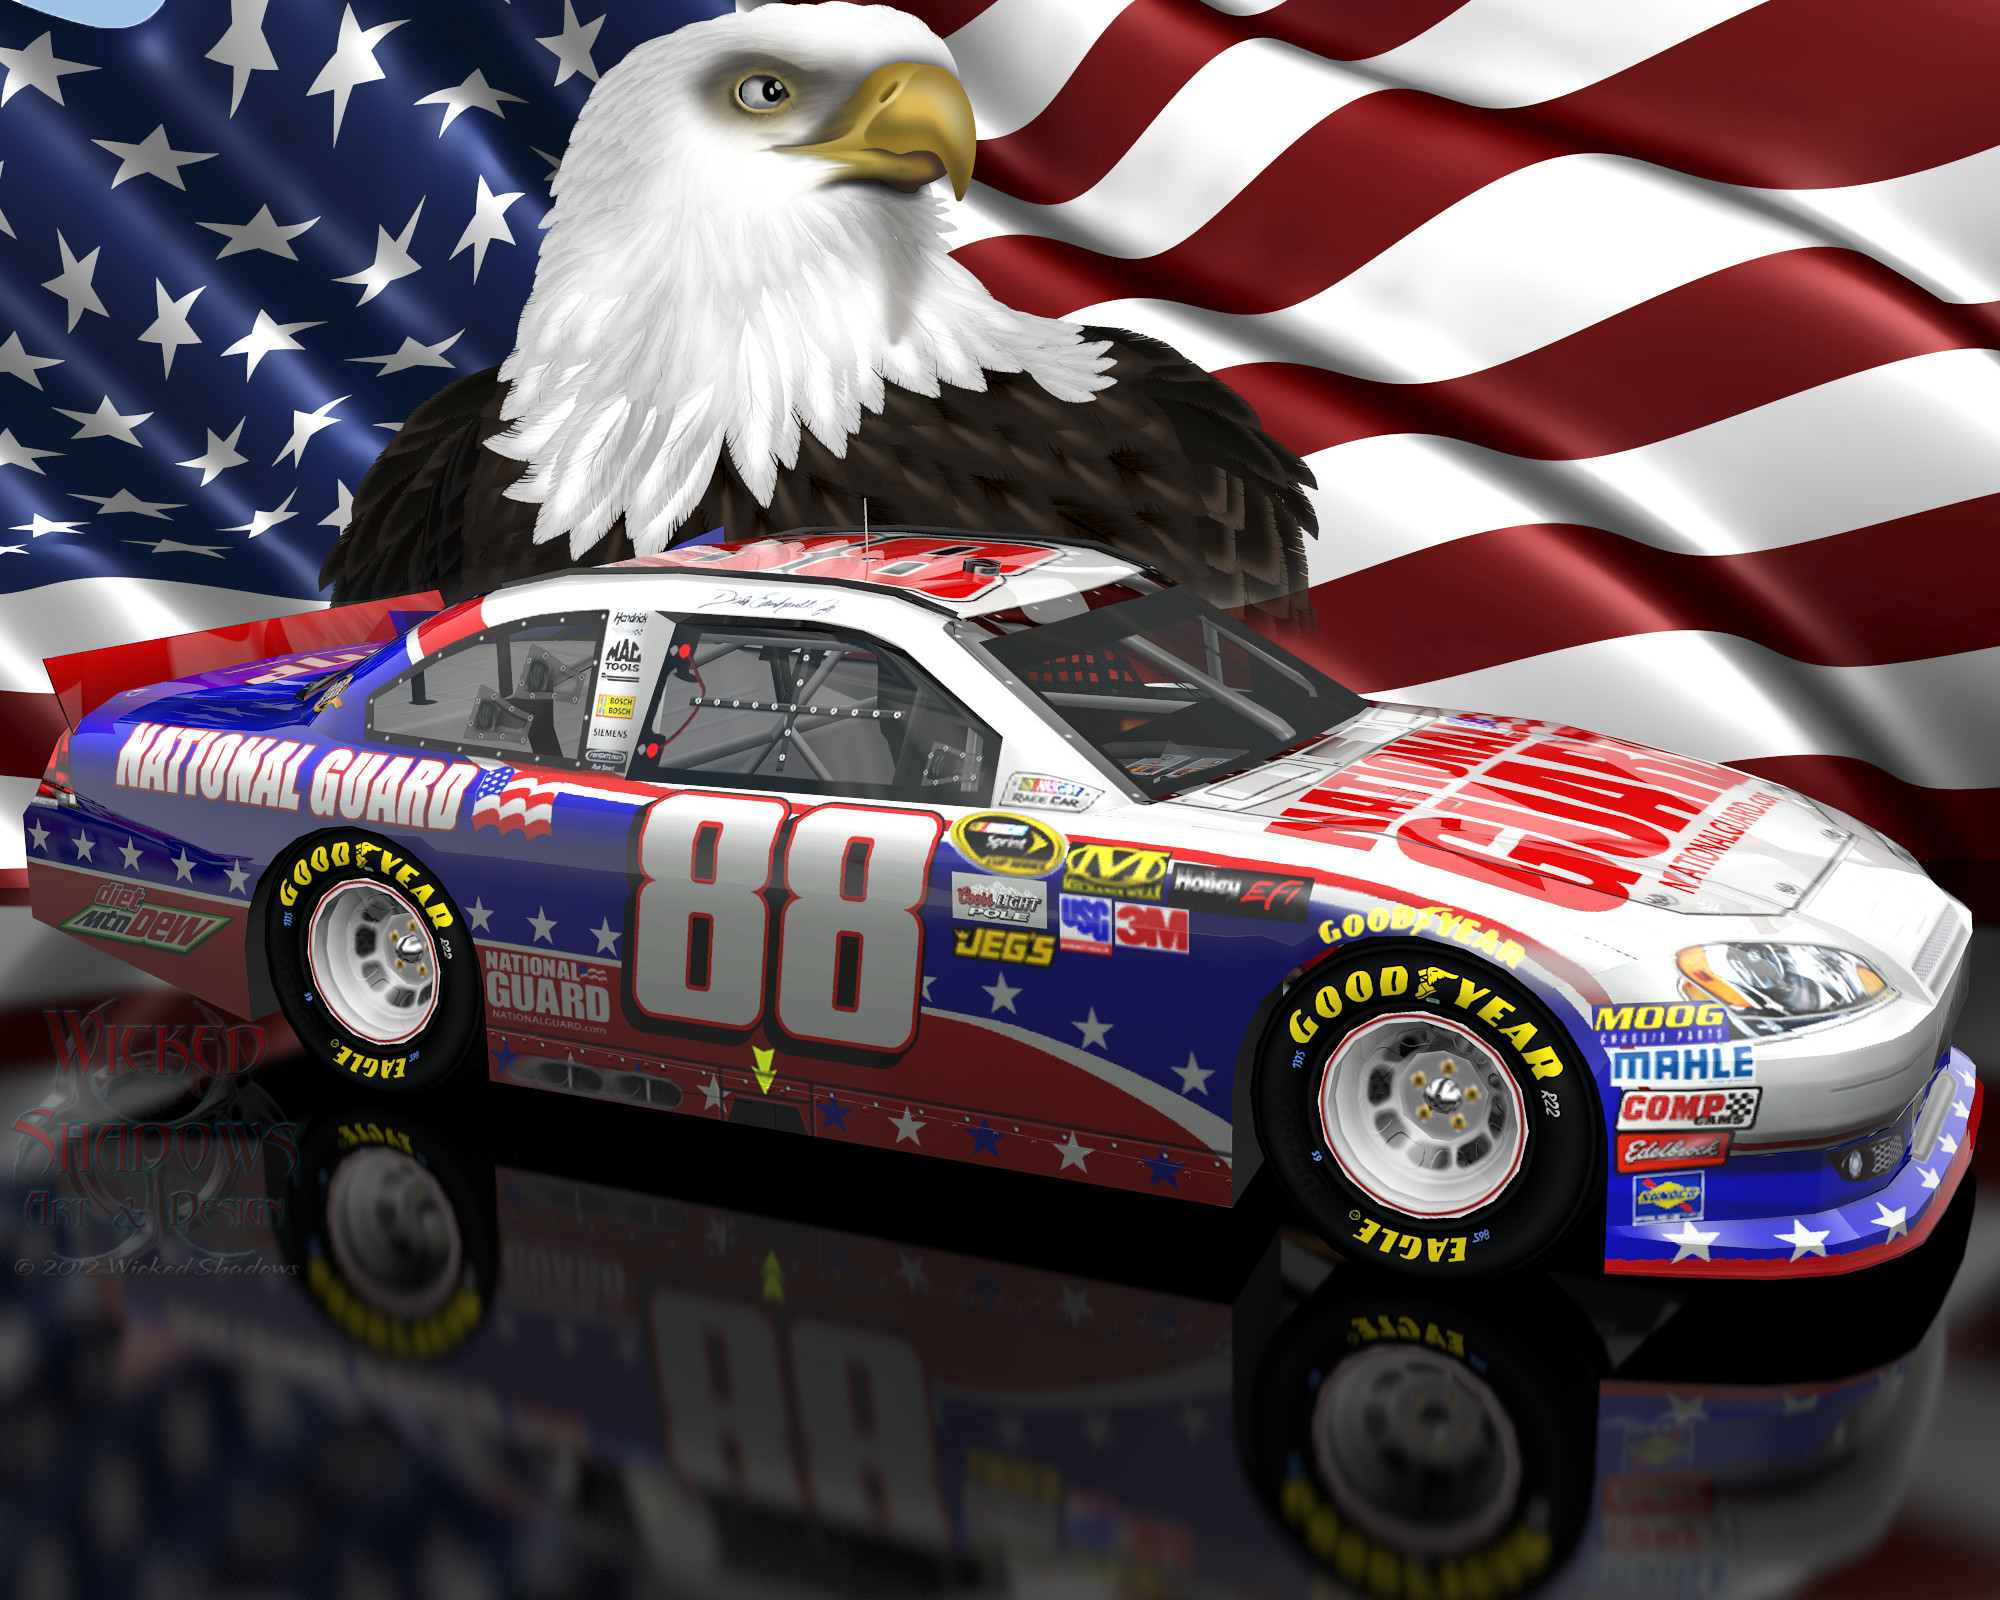 1080 Best Images About Nascar And Dale Jr On Pinterest: Nascar Wallpaper (57+ Images